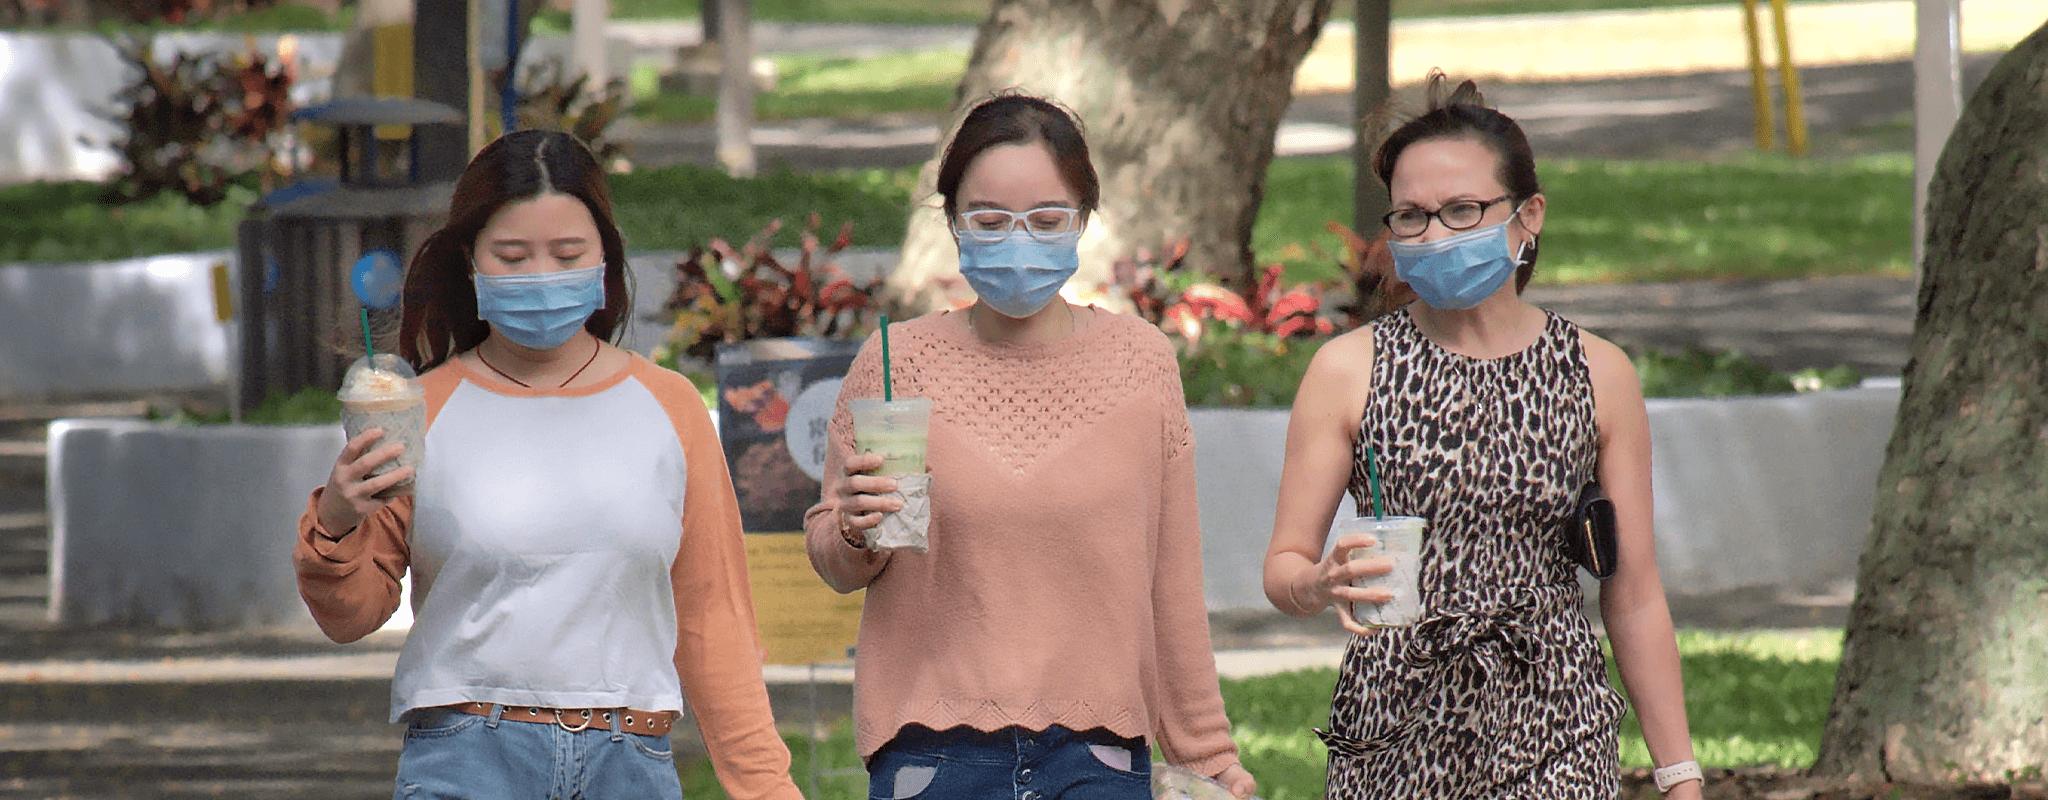 Students wearing masks walking down the mall with breakfast drinks in hand